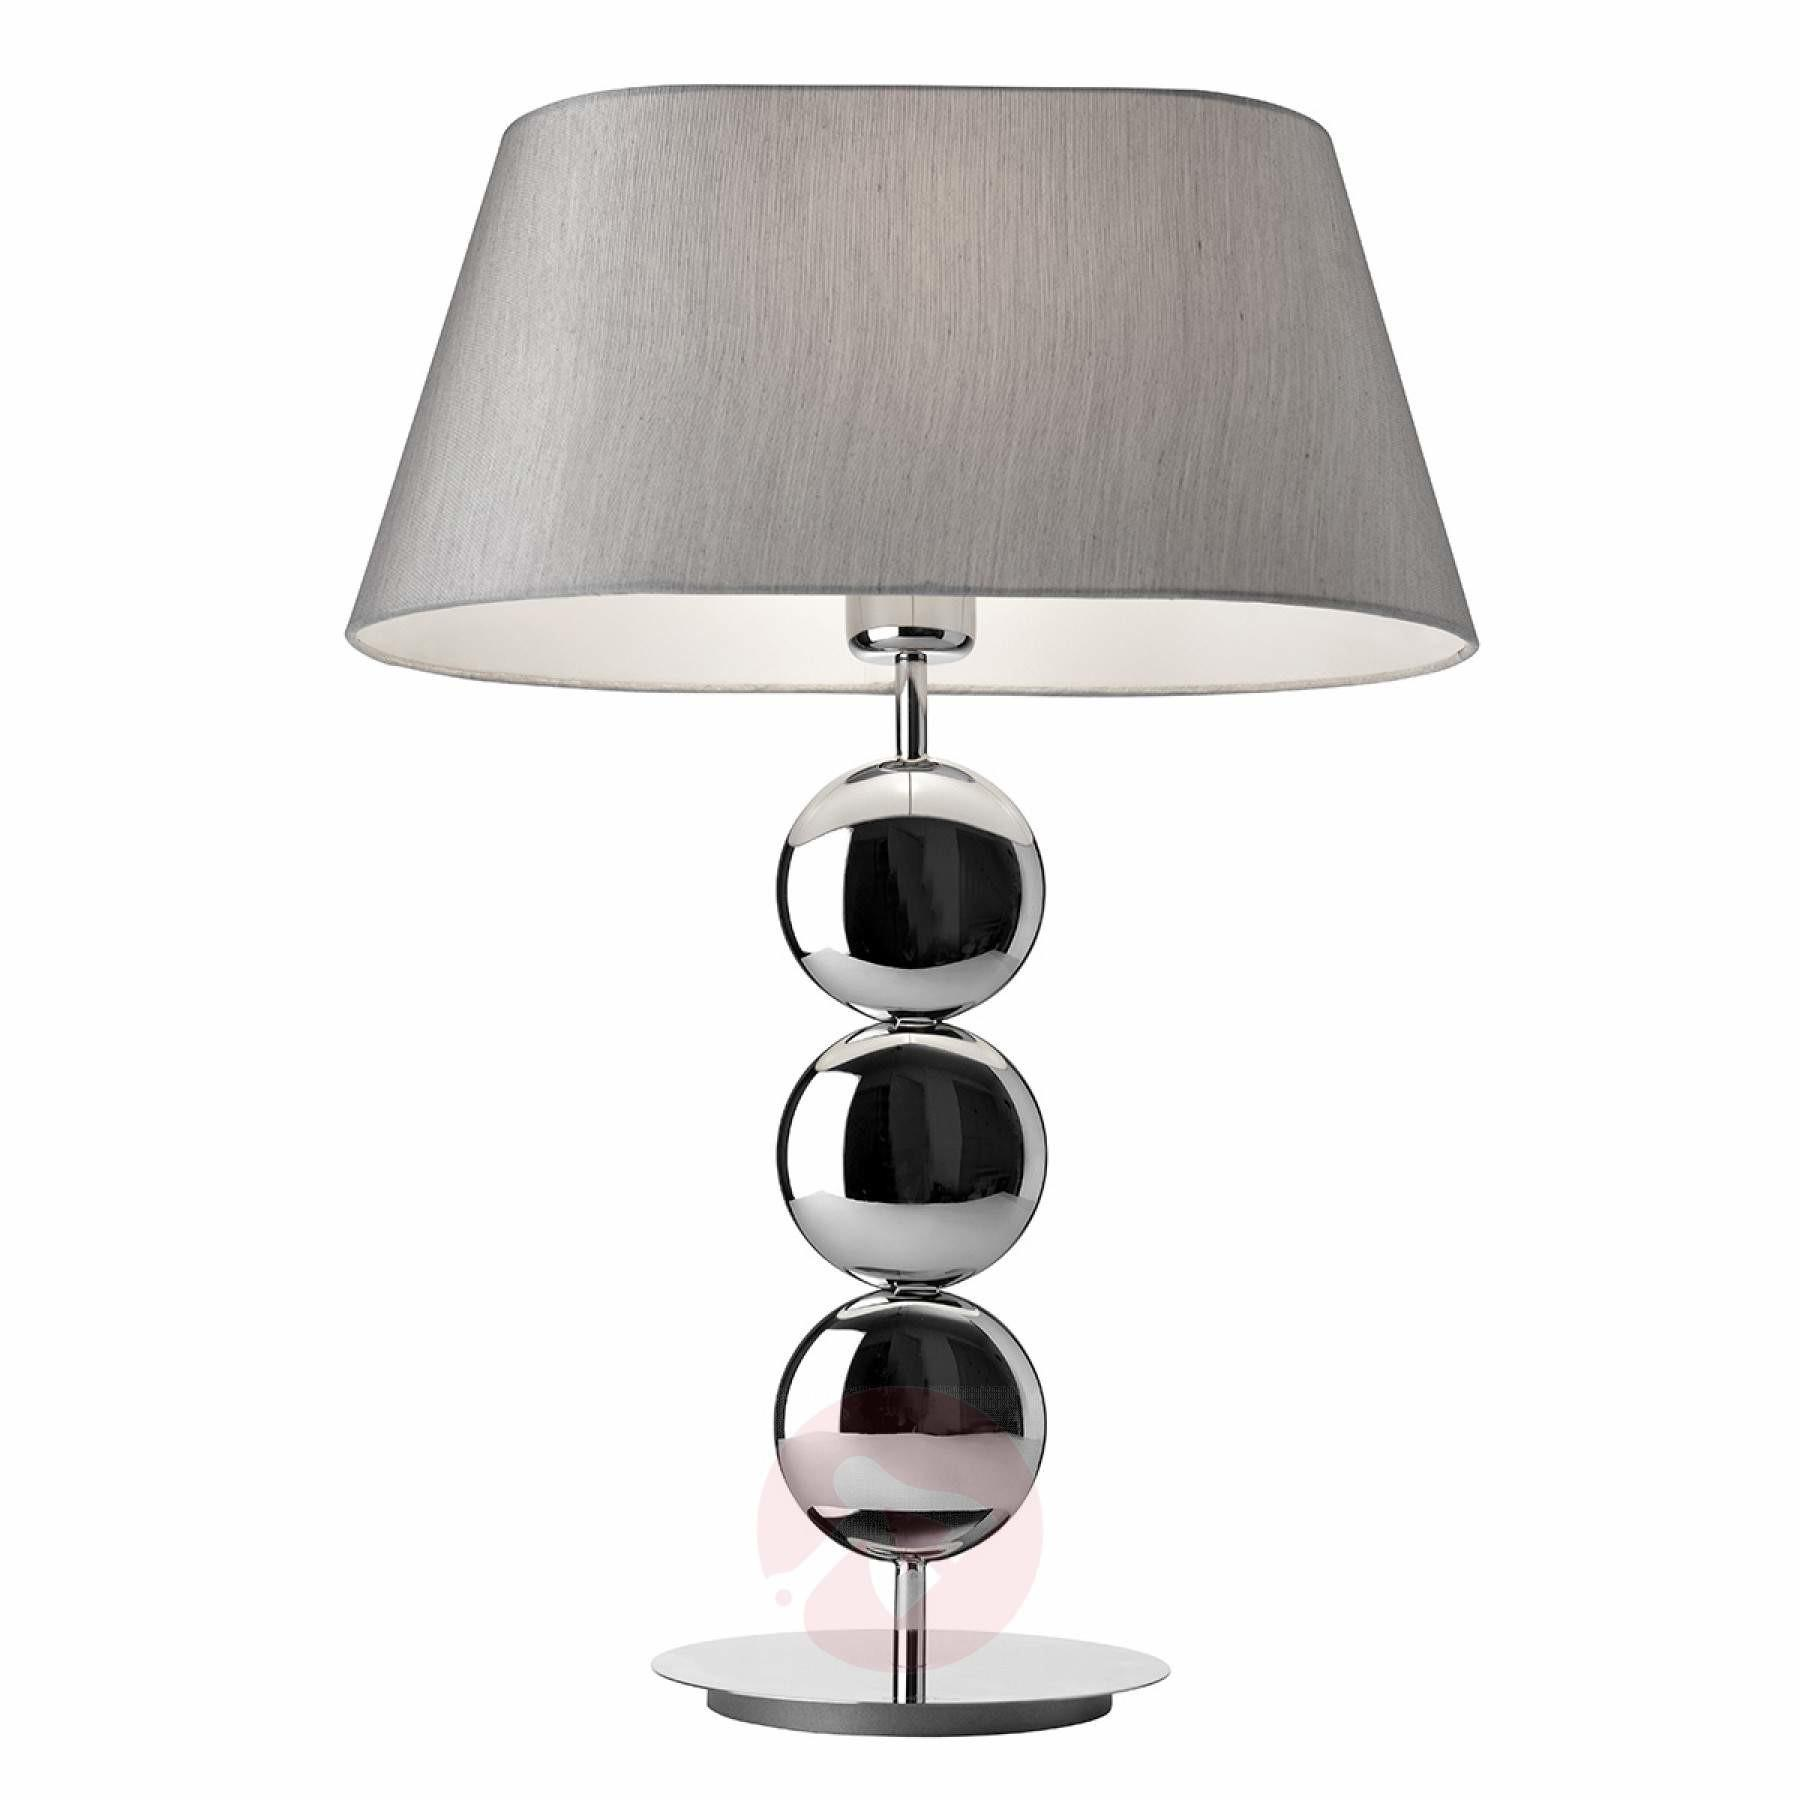 Stylish Table Lamp Sofia Silver Base Lights